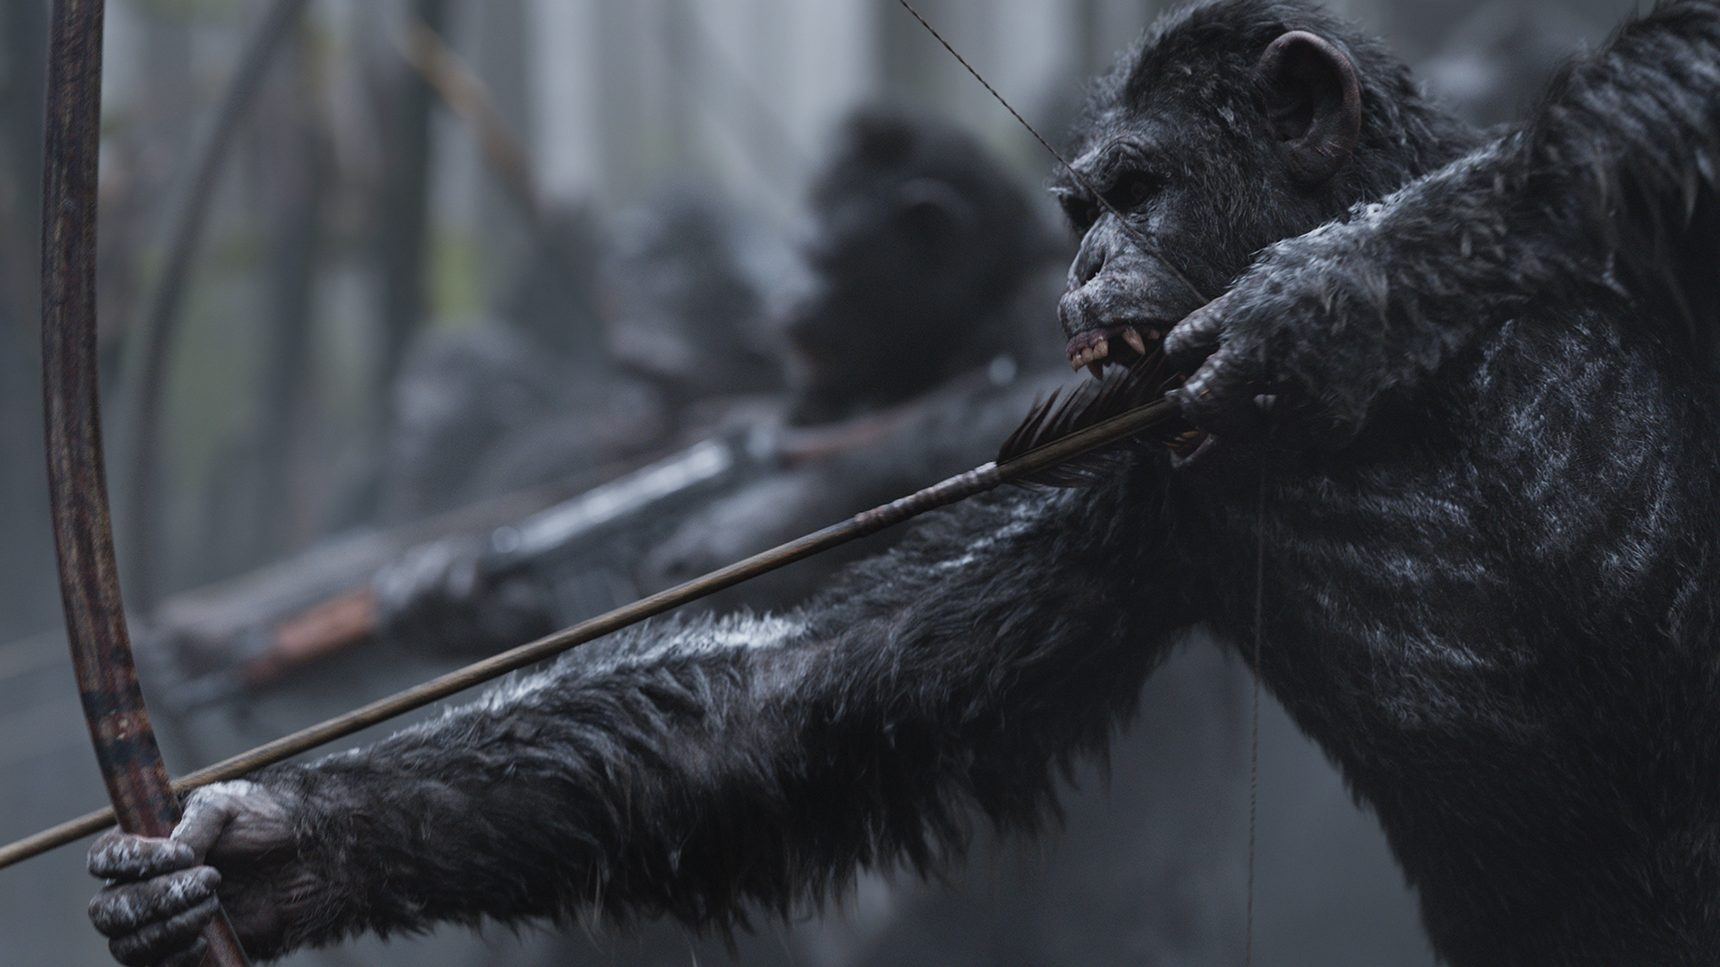 'War for the Planet of the Apes' Trailer Shares a Glimpse of Woody Harrelson as the Film's New Villain